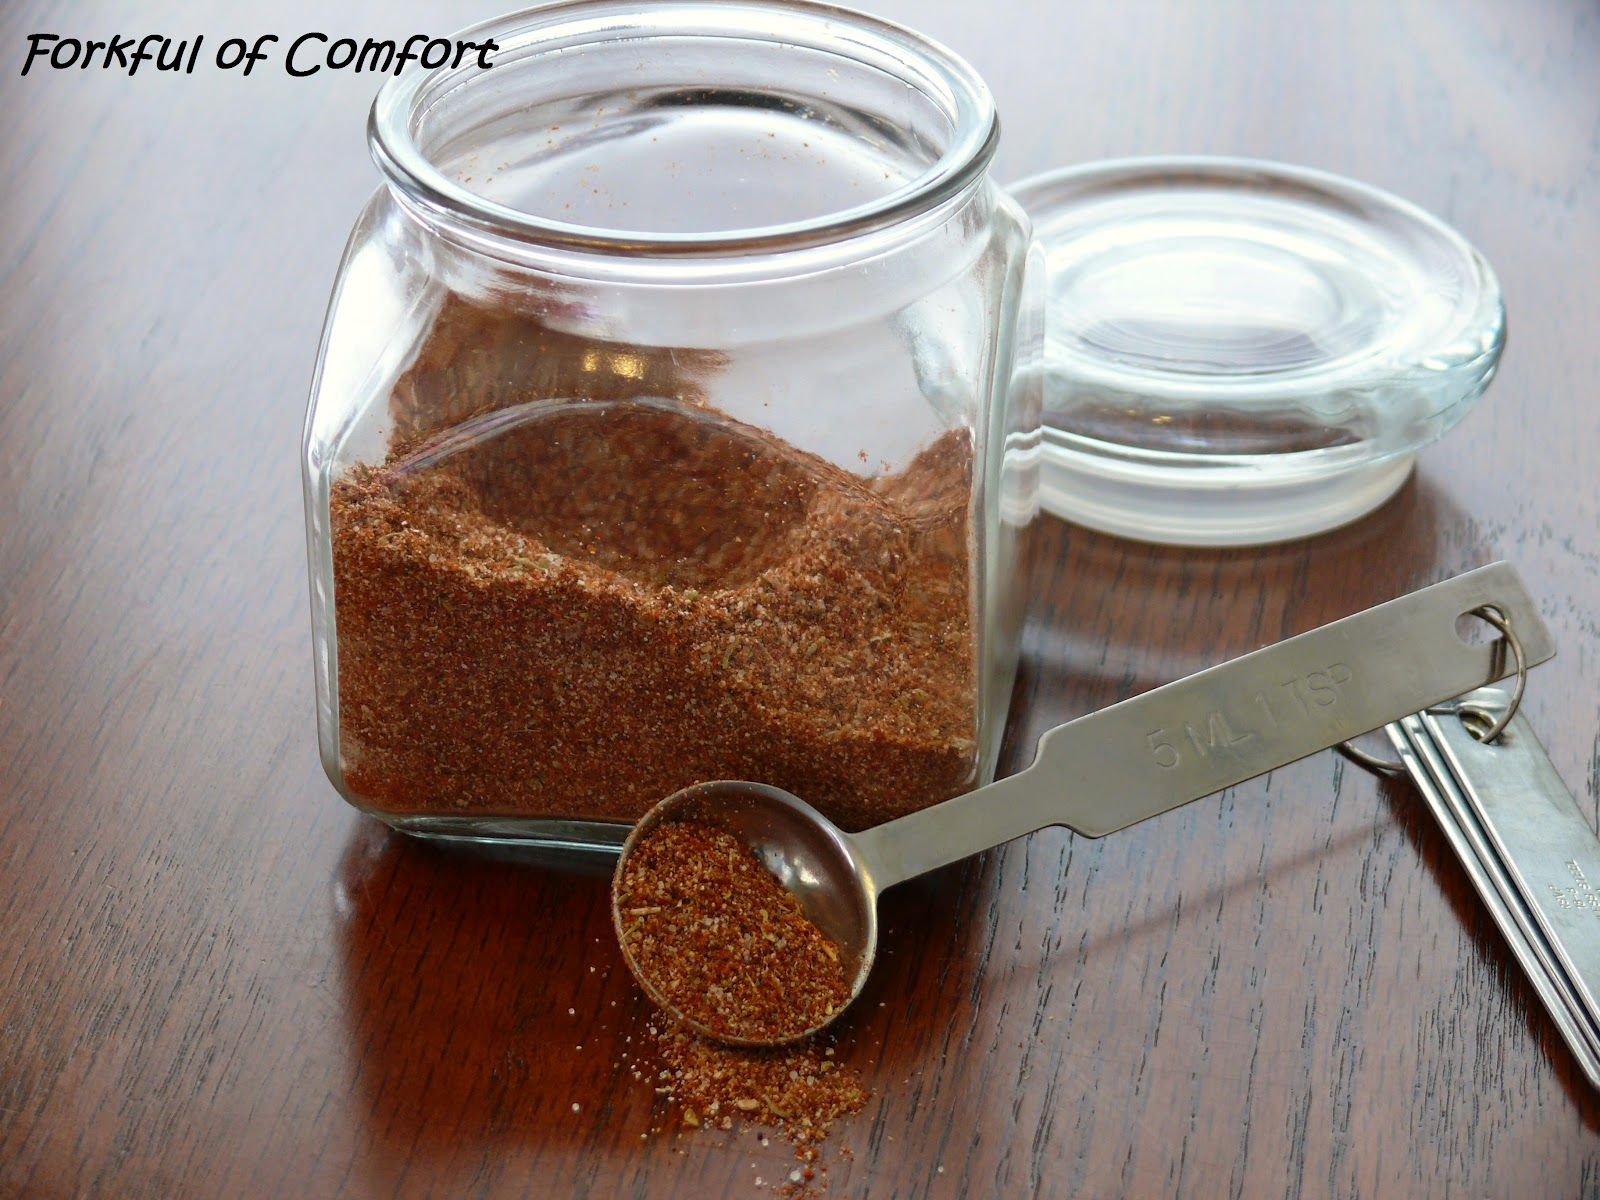 ... taco seasoning when most likely you already have all the spices you